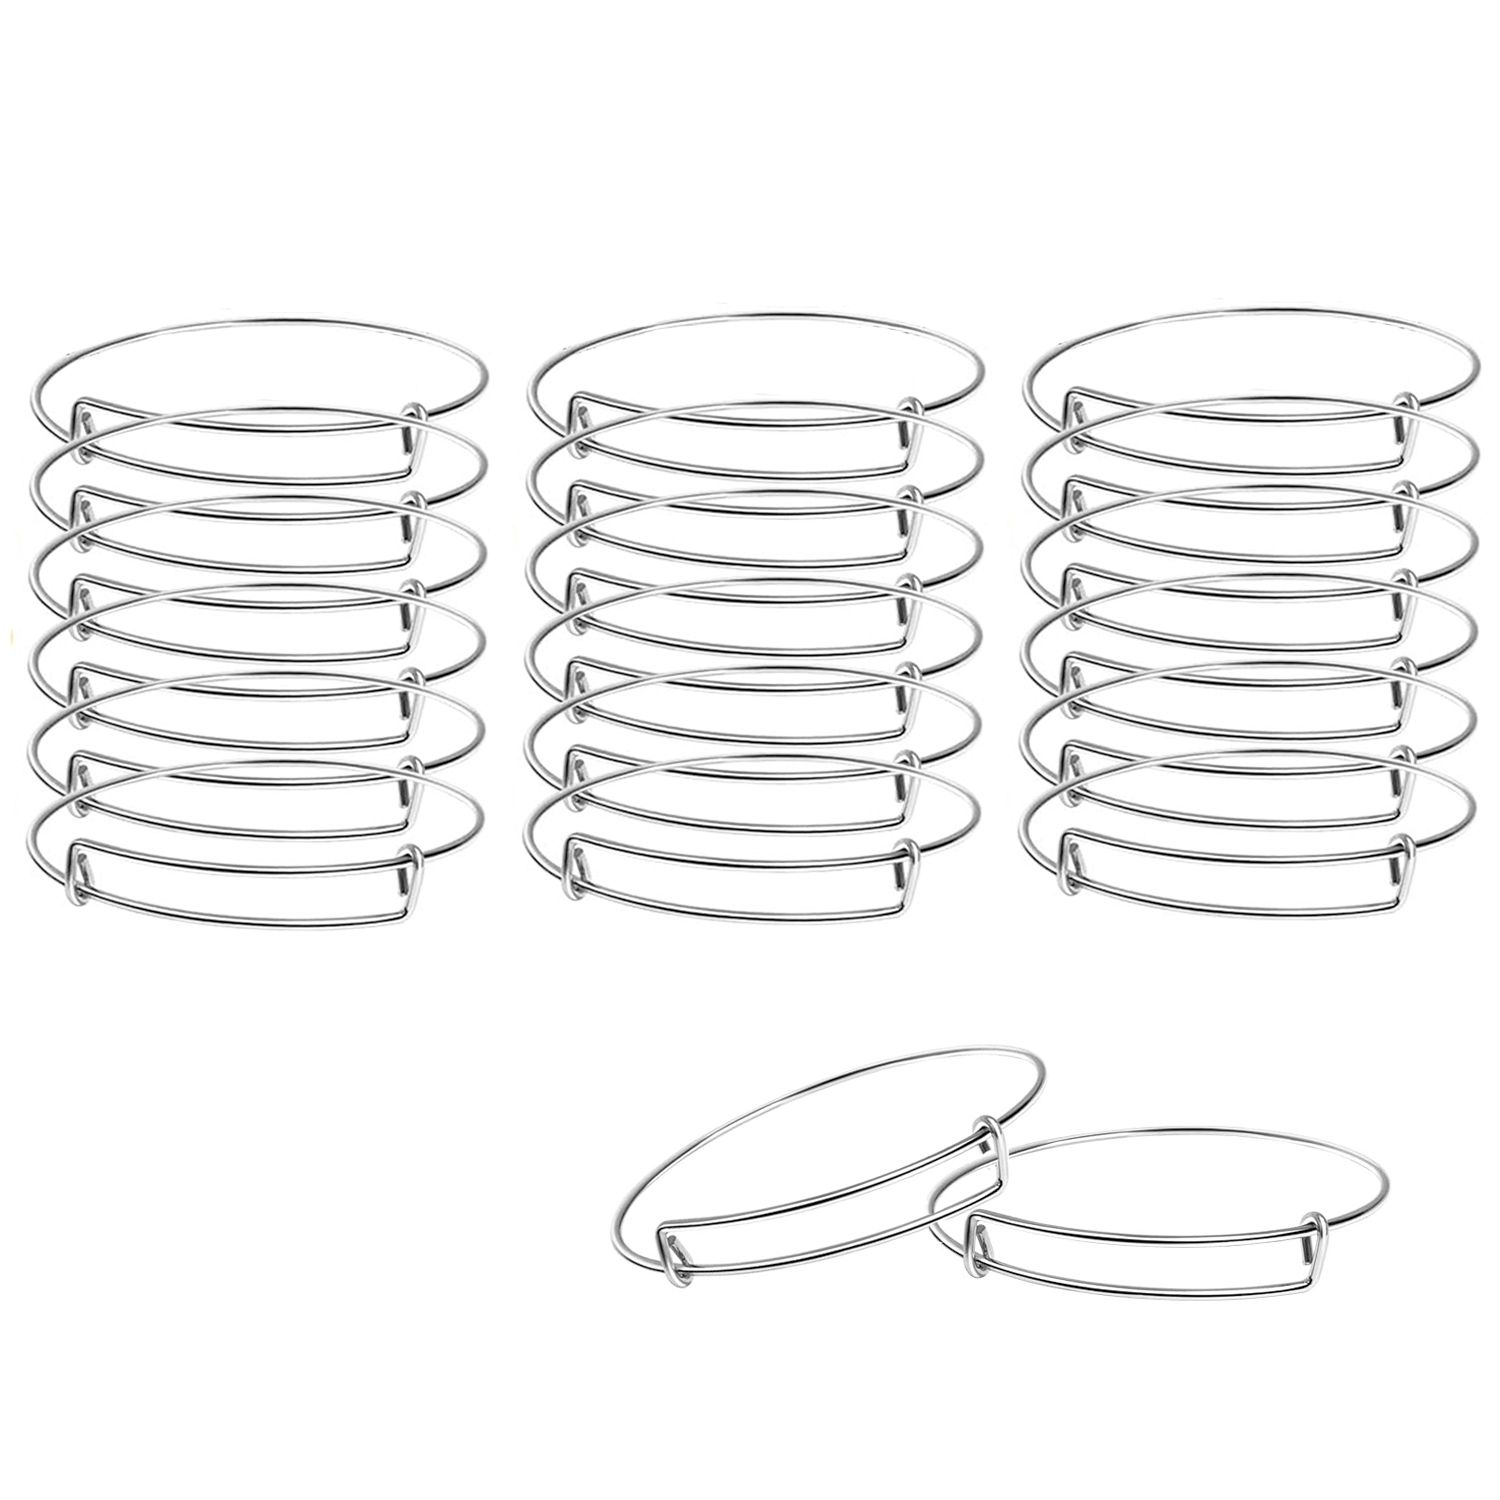 BEADNOVA Bangles for Jewelry Making 20 Pcs Silver Adjustable Bangles Expandable Bracelets for Jewelry Making DIY Craft (Silver, 20pcs)